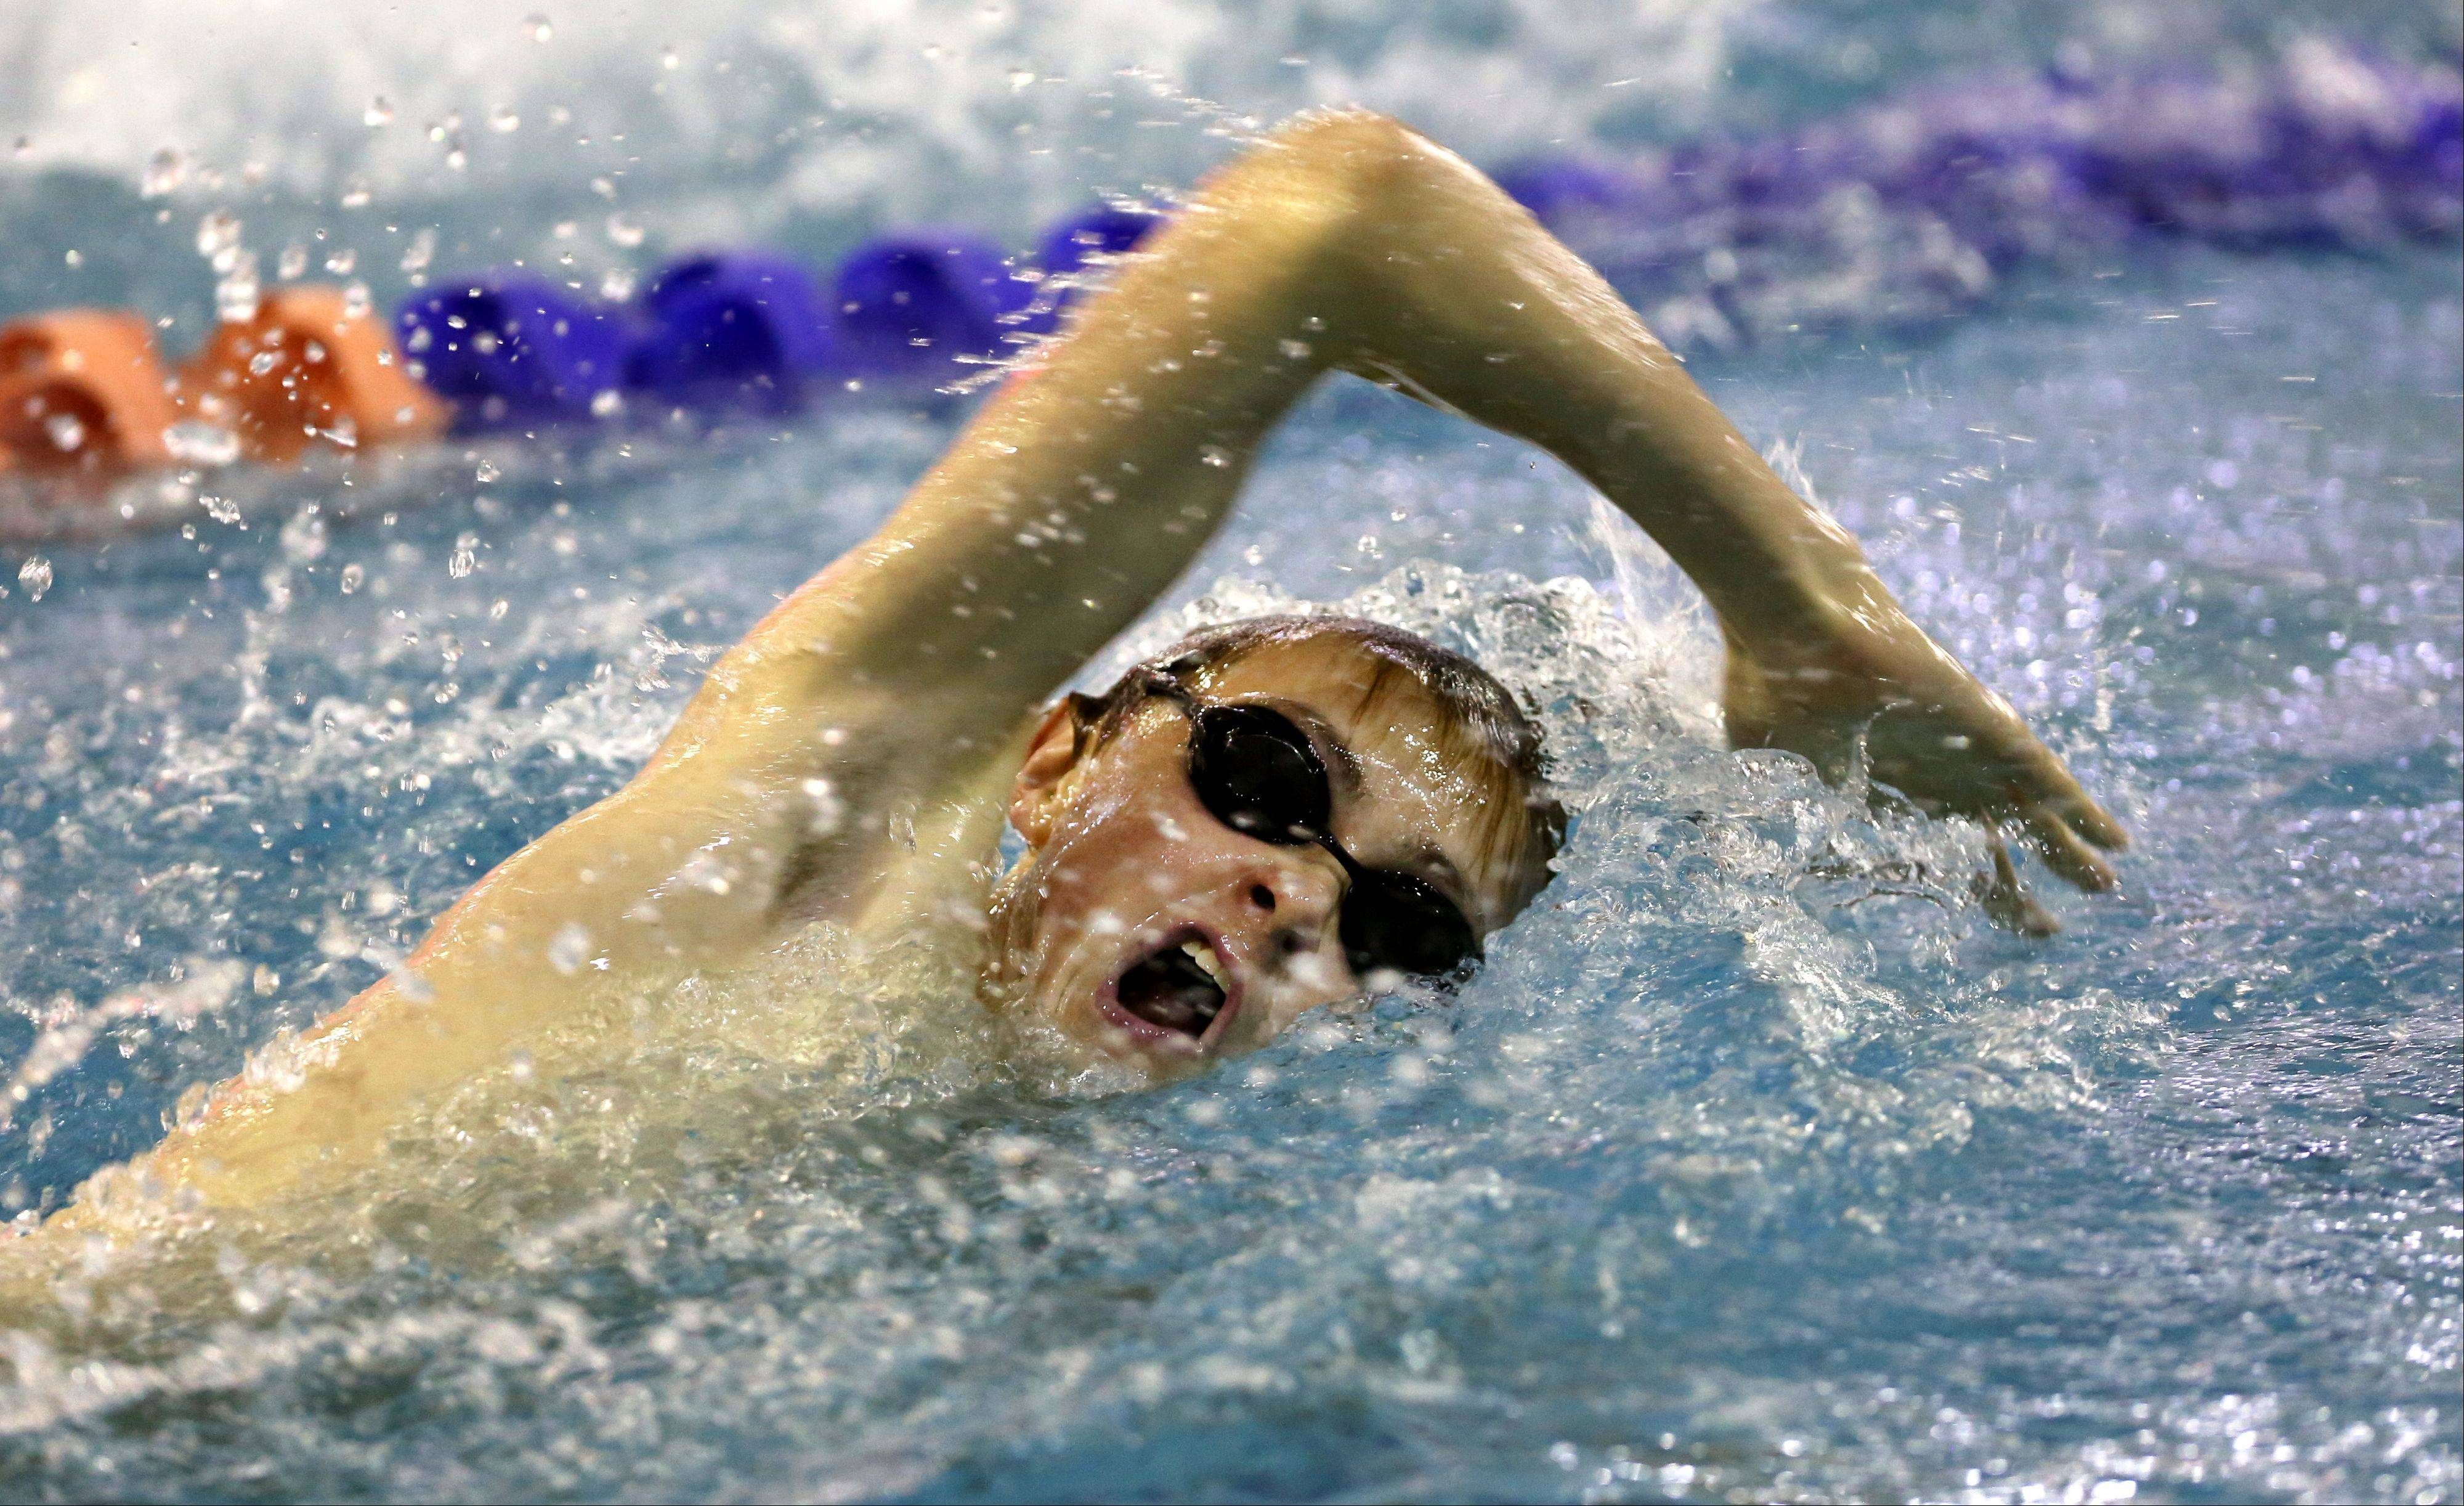 Daniel White/dwhite@dailyherald.comWest Aurora's Martin Ambre swims the first heat of the 100 yard freestyle during the Boys DVC swim meet at Naperville North.